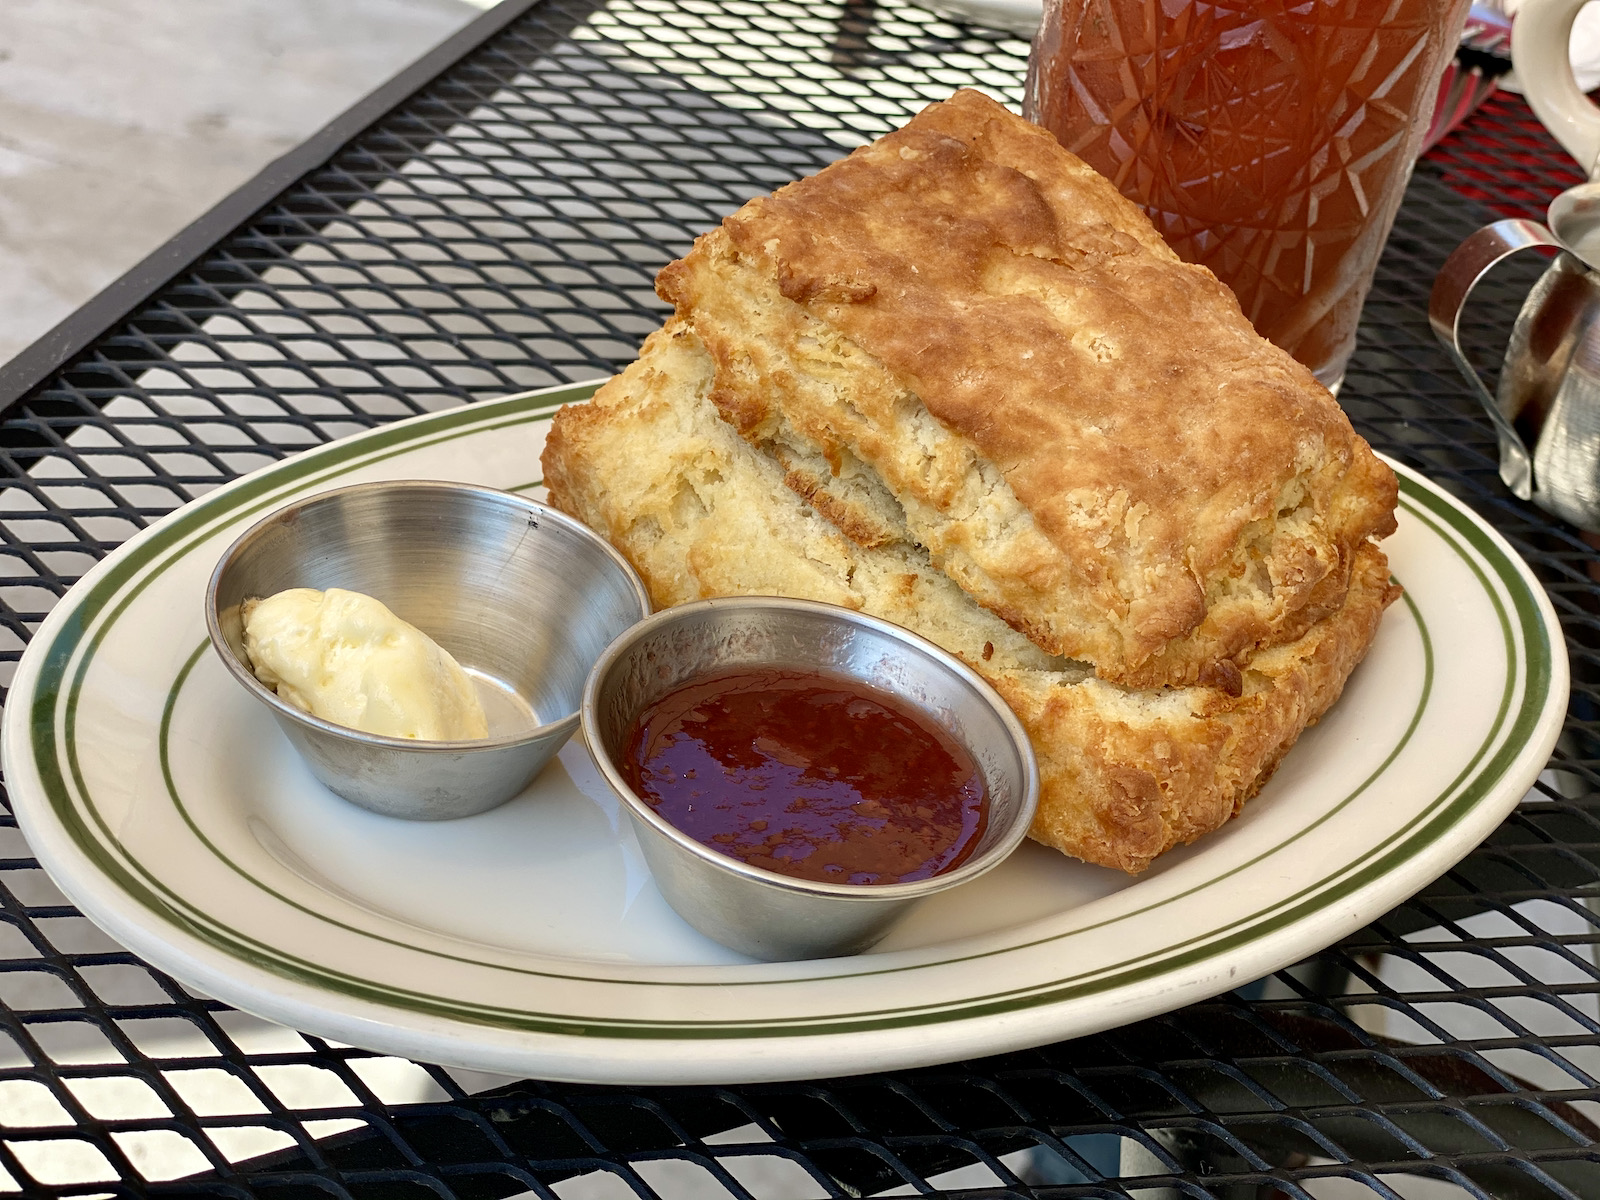 Buttermilk biscuit with butter and jam